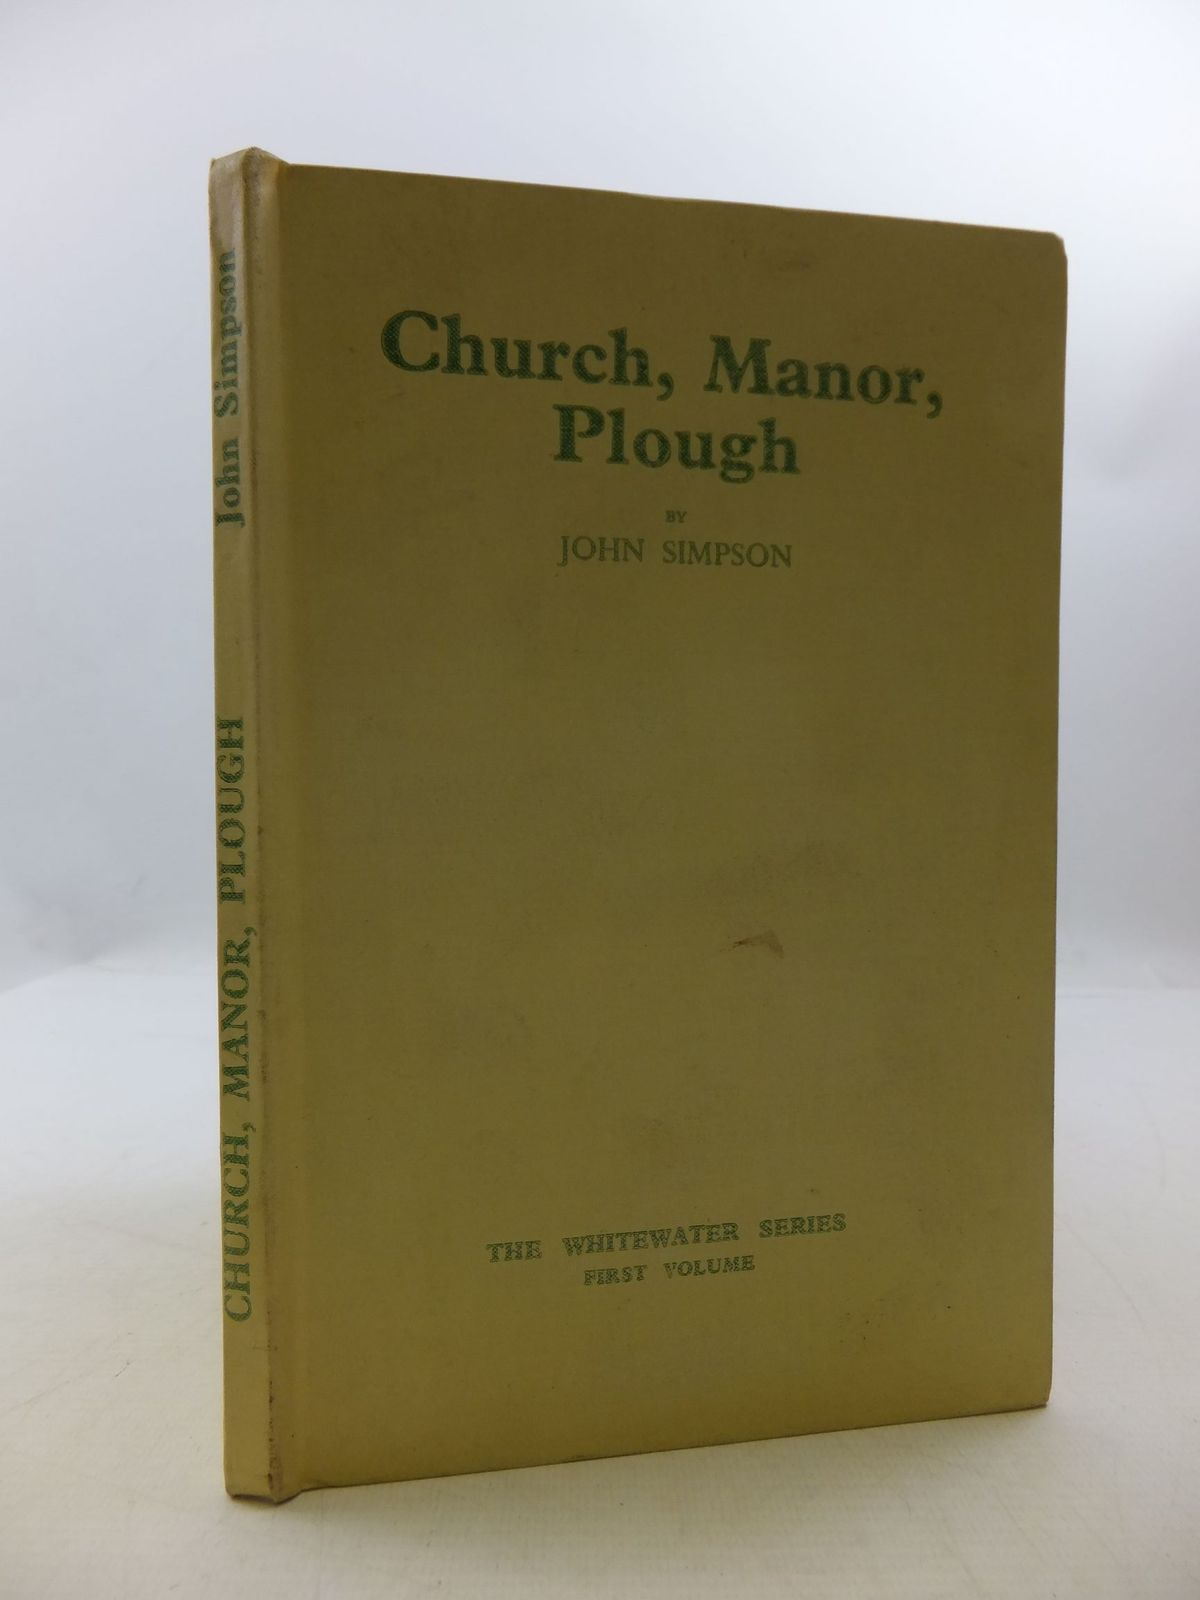 Photo of CHURCH, MANOR, PLOUGH VOLUME I OF THE HISTORY OF SOUTH WARNBOROUGH